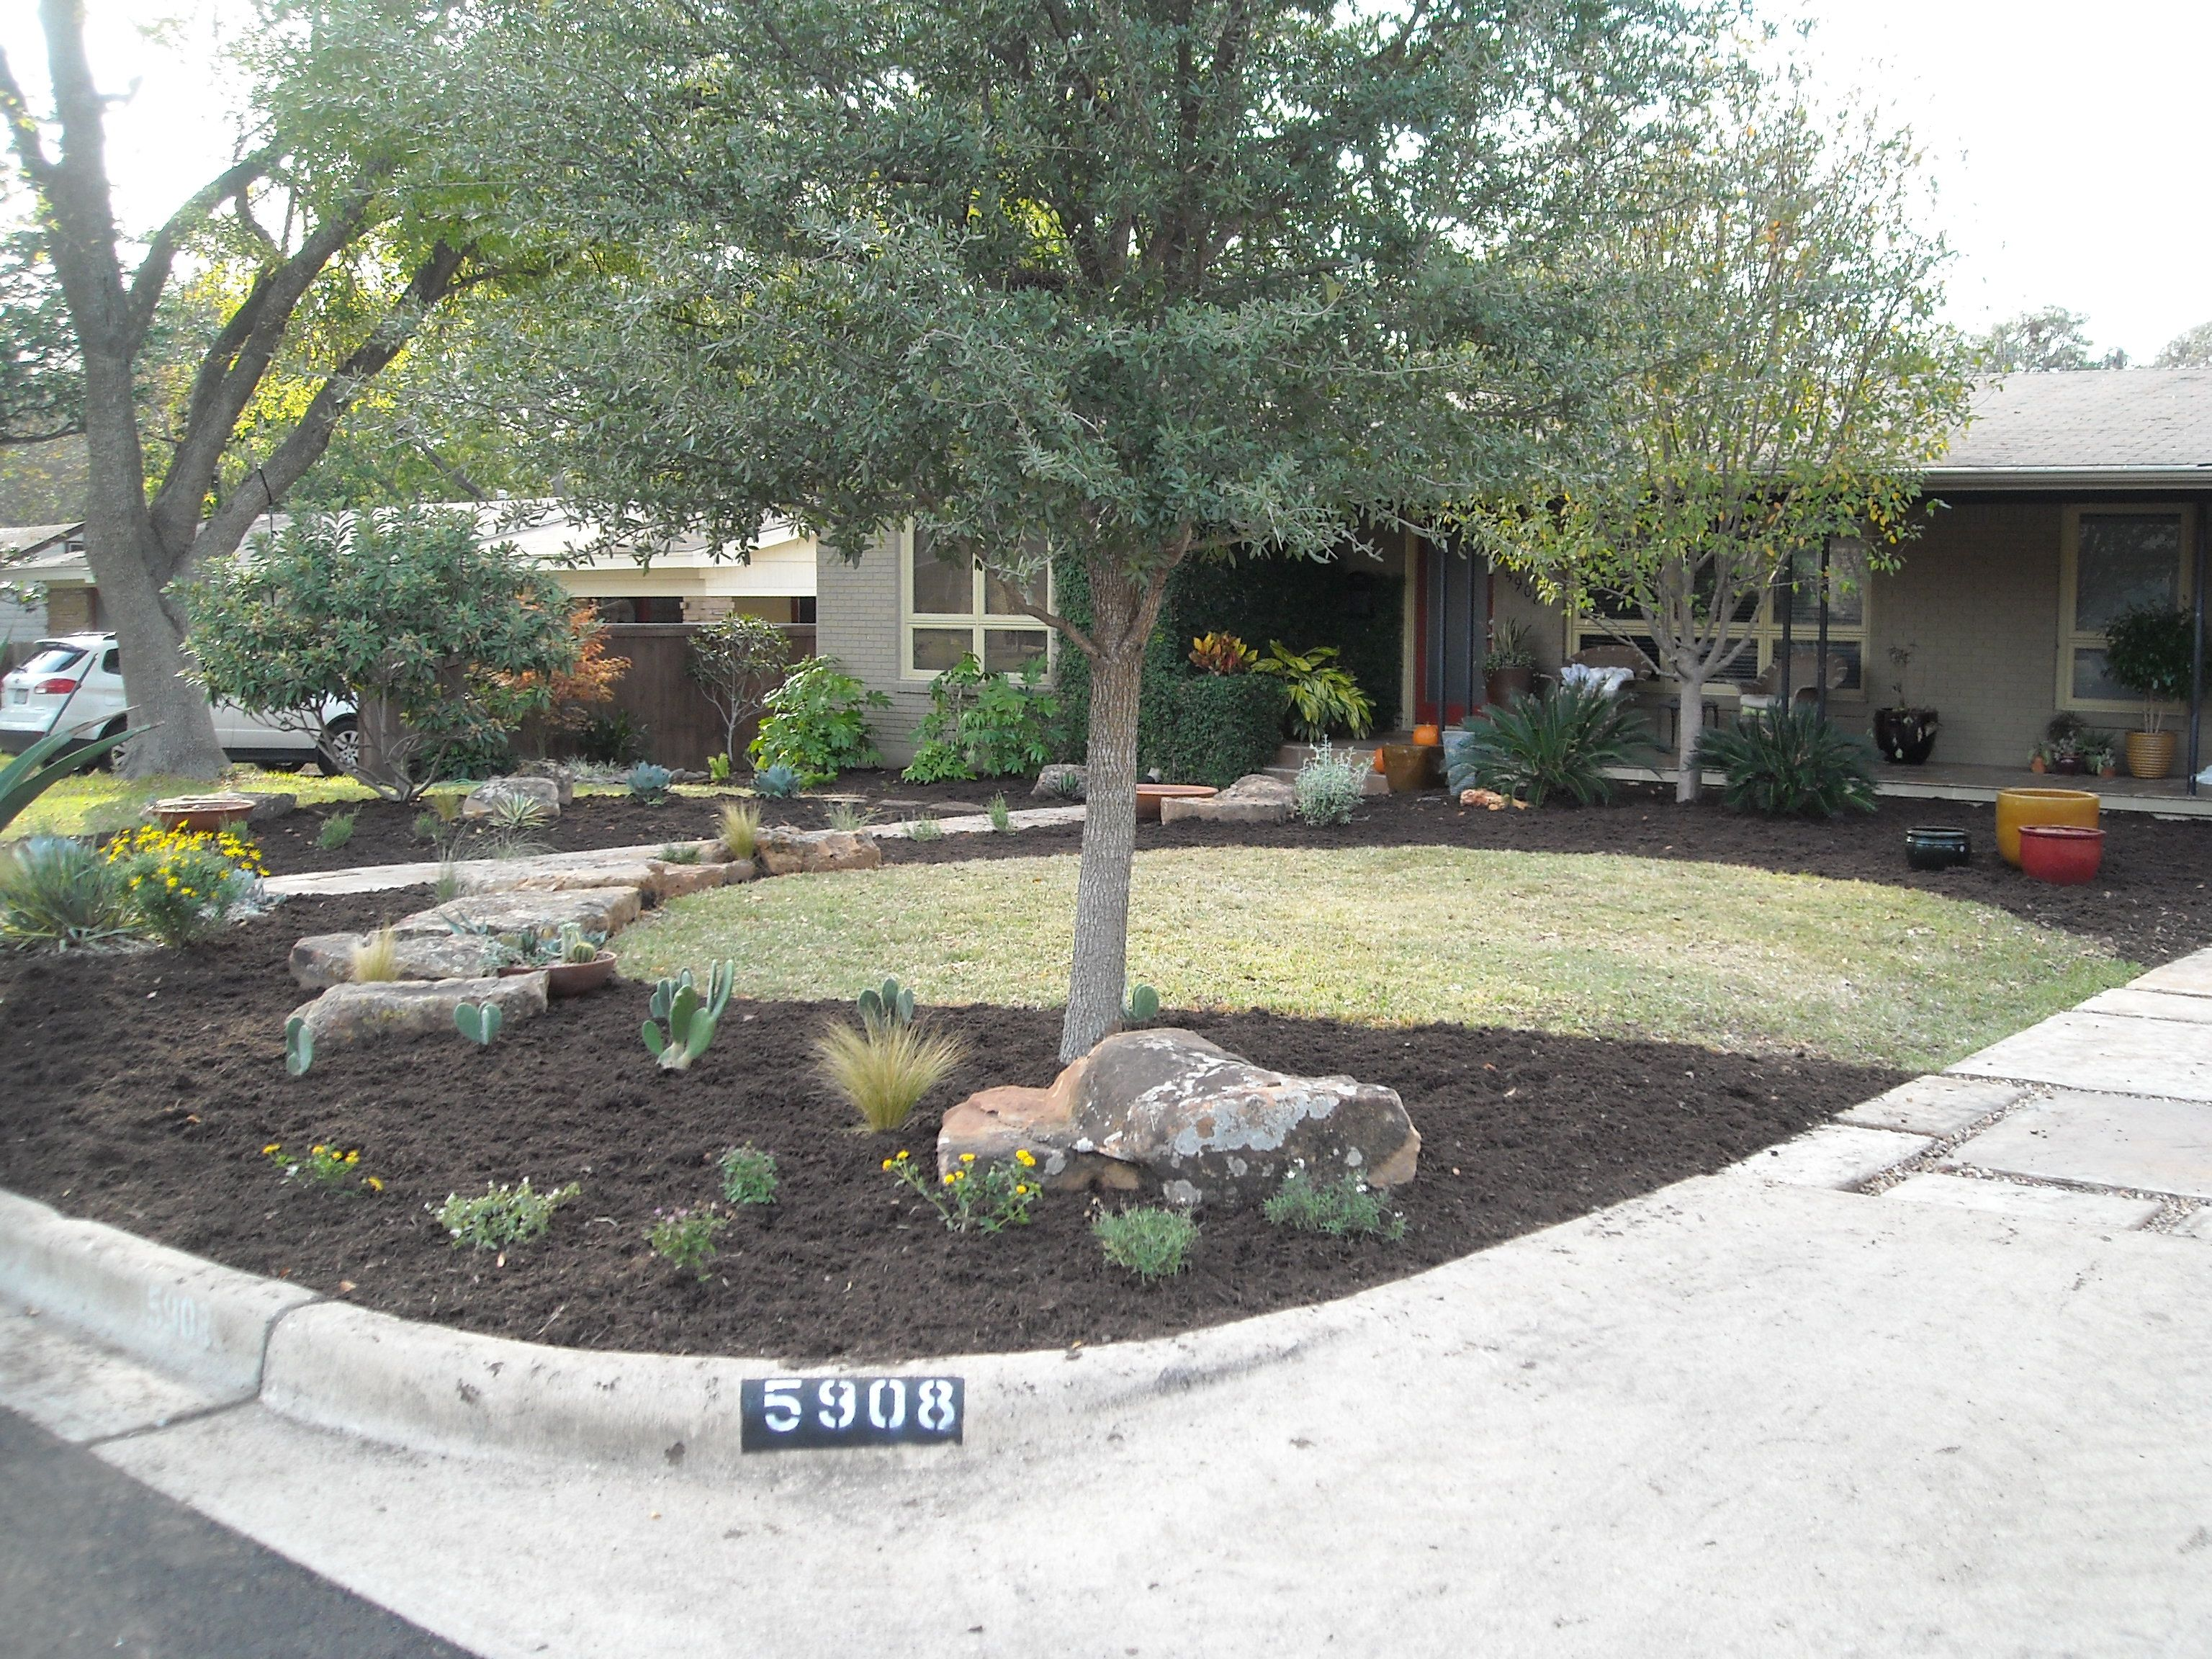 Front yard landscape - large boulders, sweeping mulch beds ...